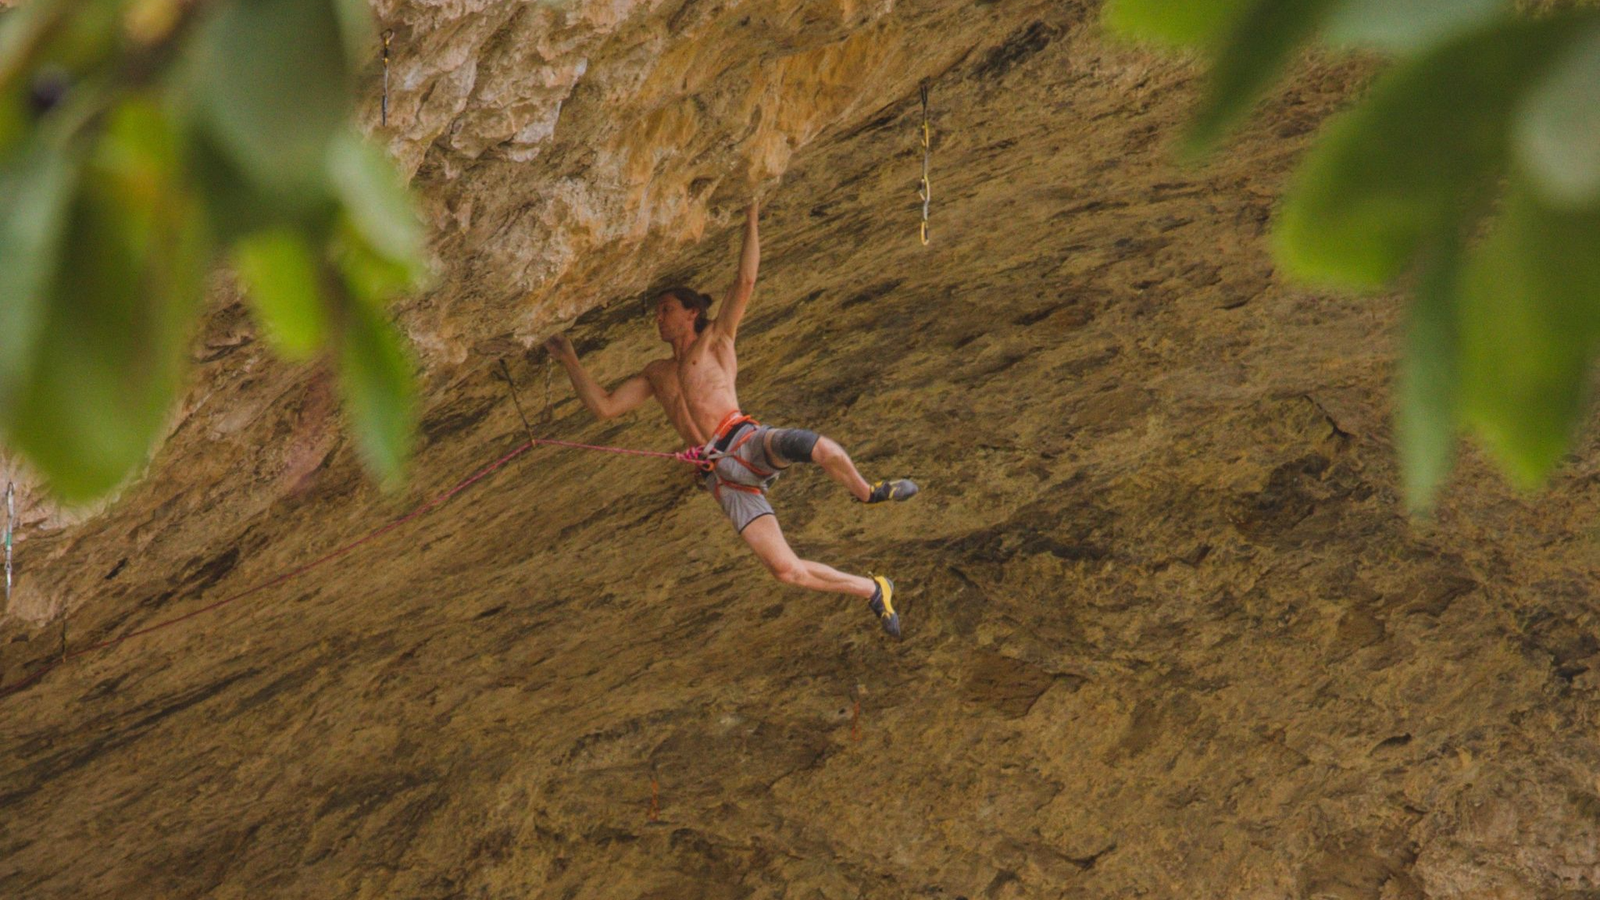 Planet Garbage 9a and an 8c+ by Dan Mirsky (39)